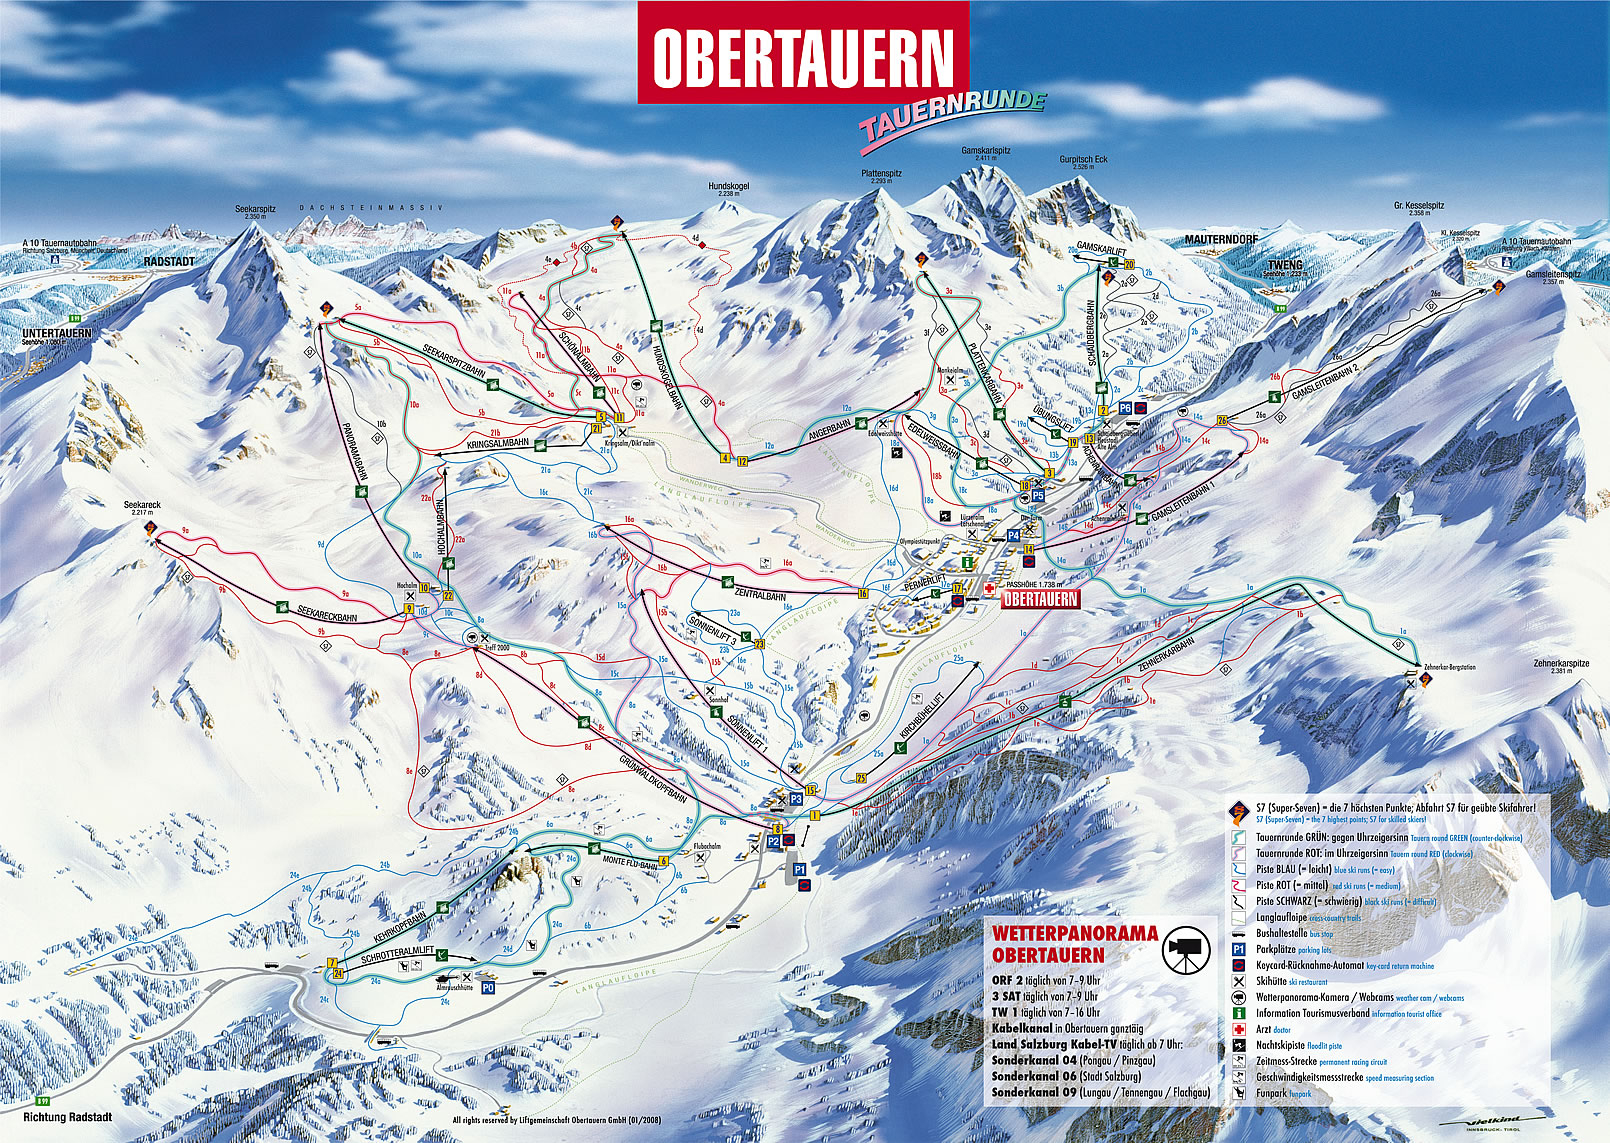 Obertauern Piste / Trail Map